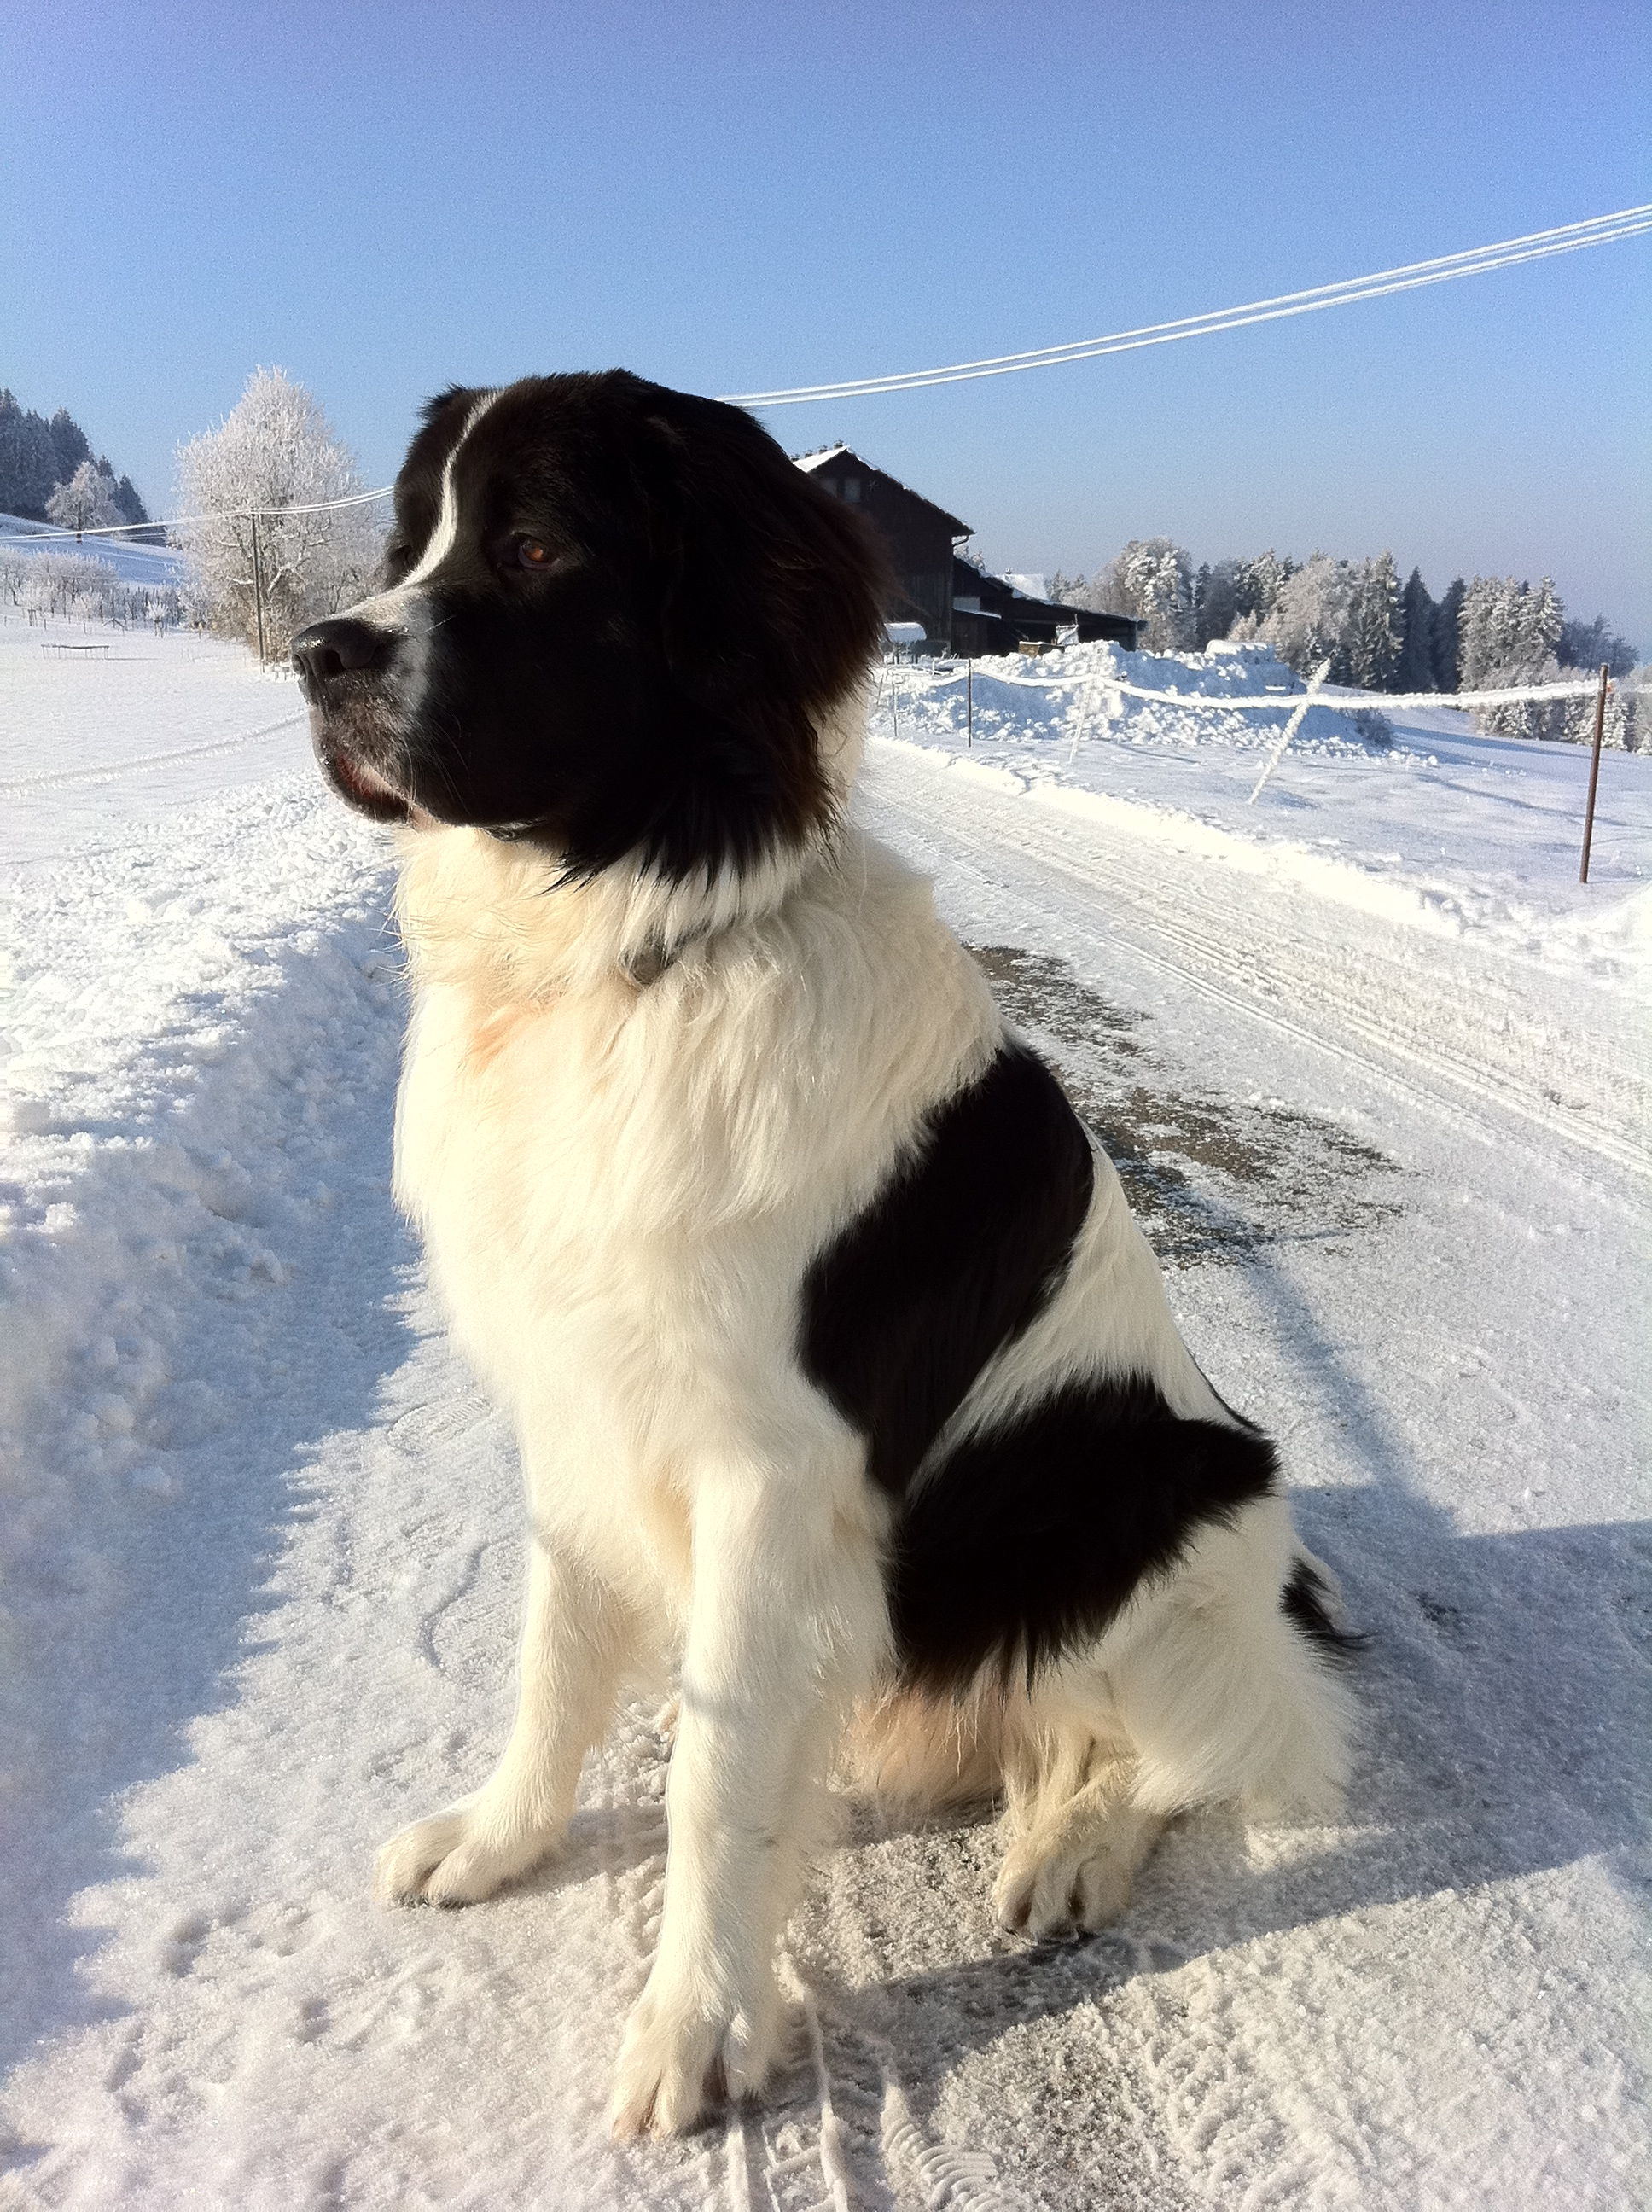 Winter Landseer dog  wallpaper